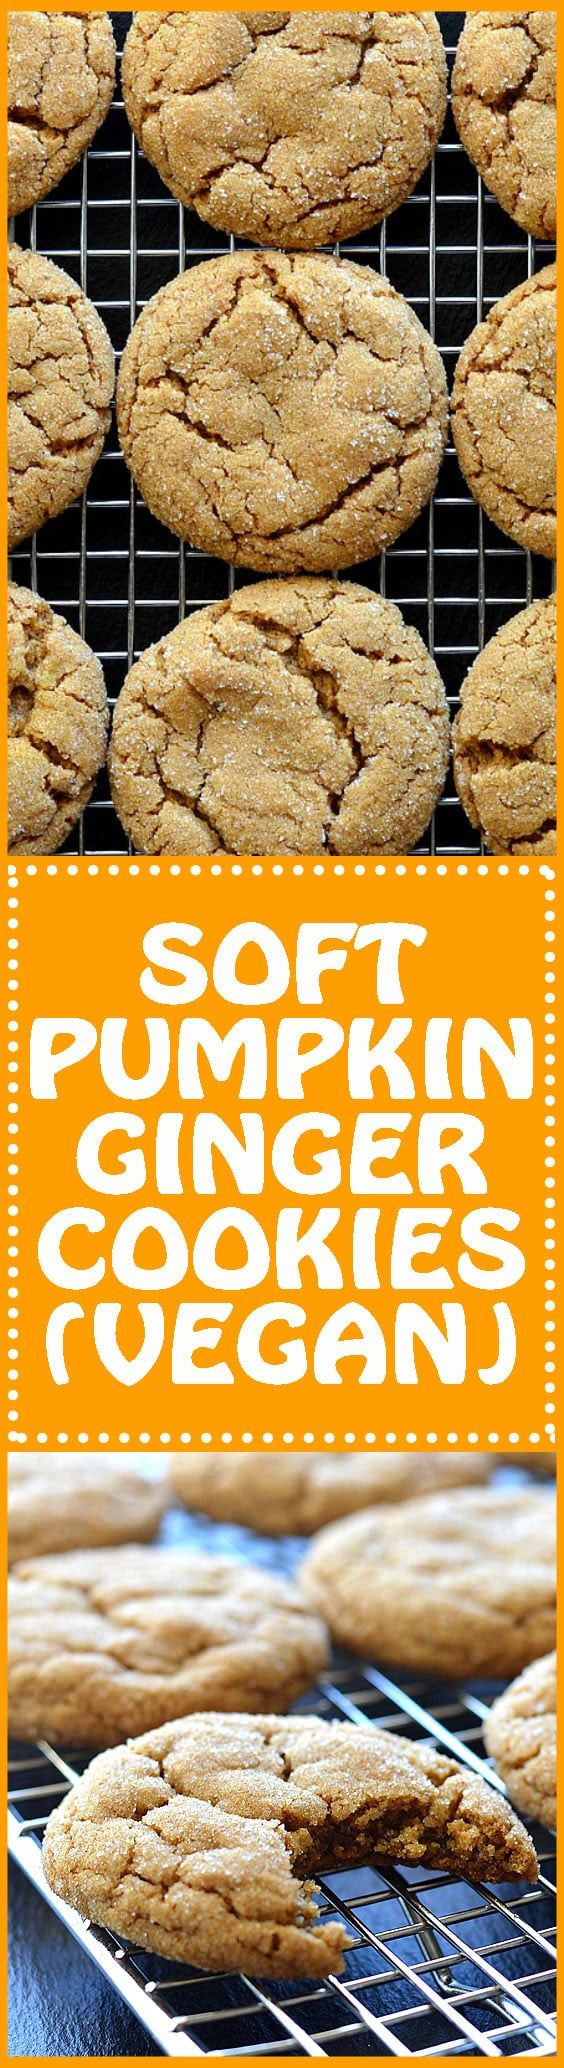 pumpkin ginger cookies * Really tasty, they're nice and chewy and flatten out super well